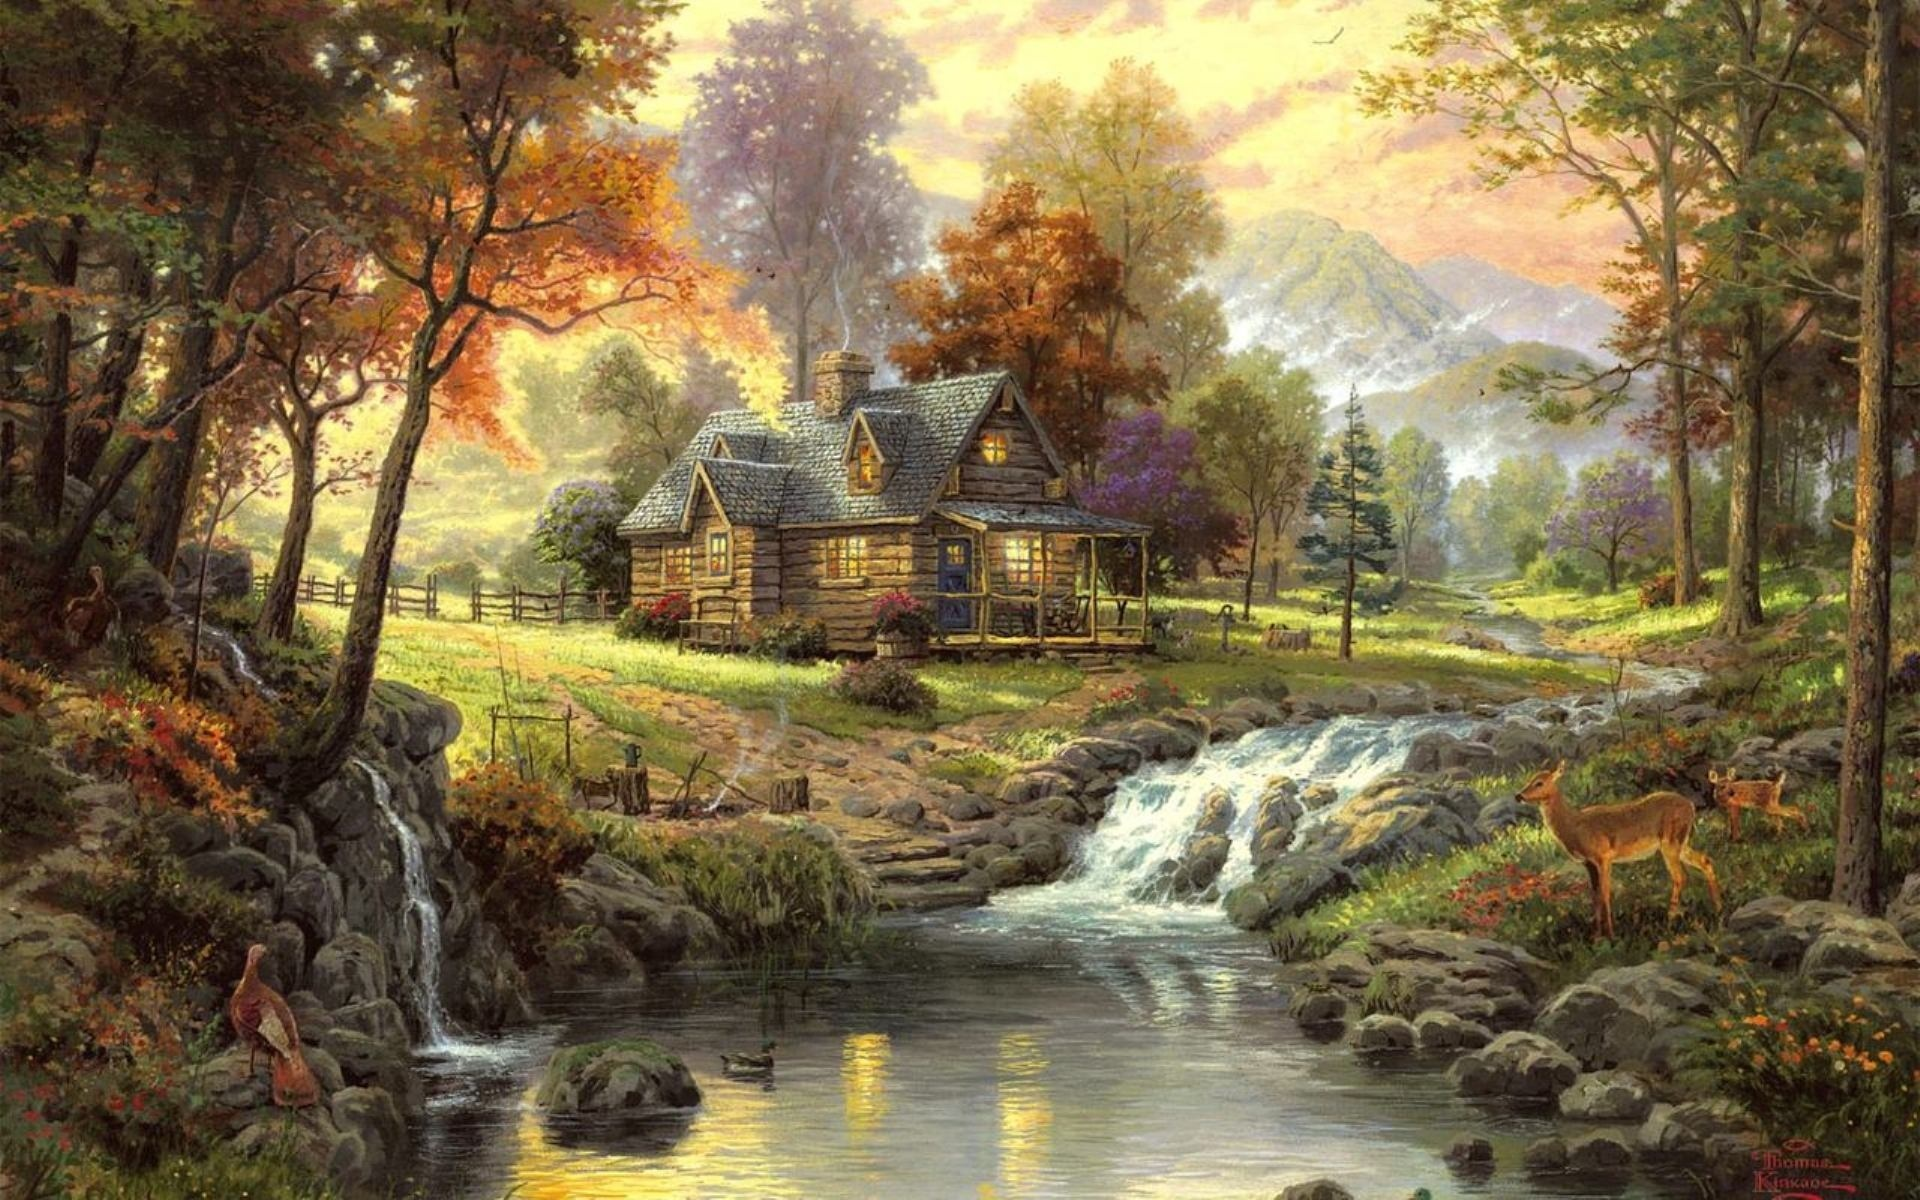 thomas kinkade paintings nature landscapes trees autumn fall seasonal 1049